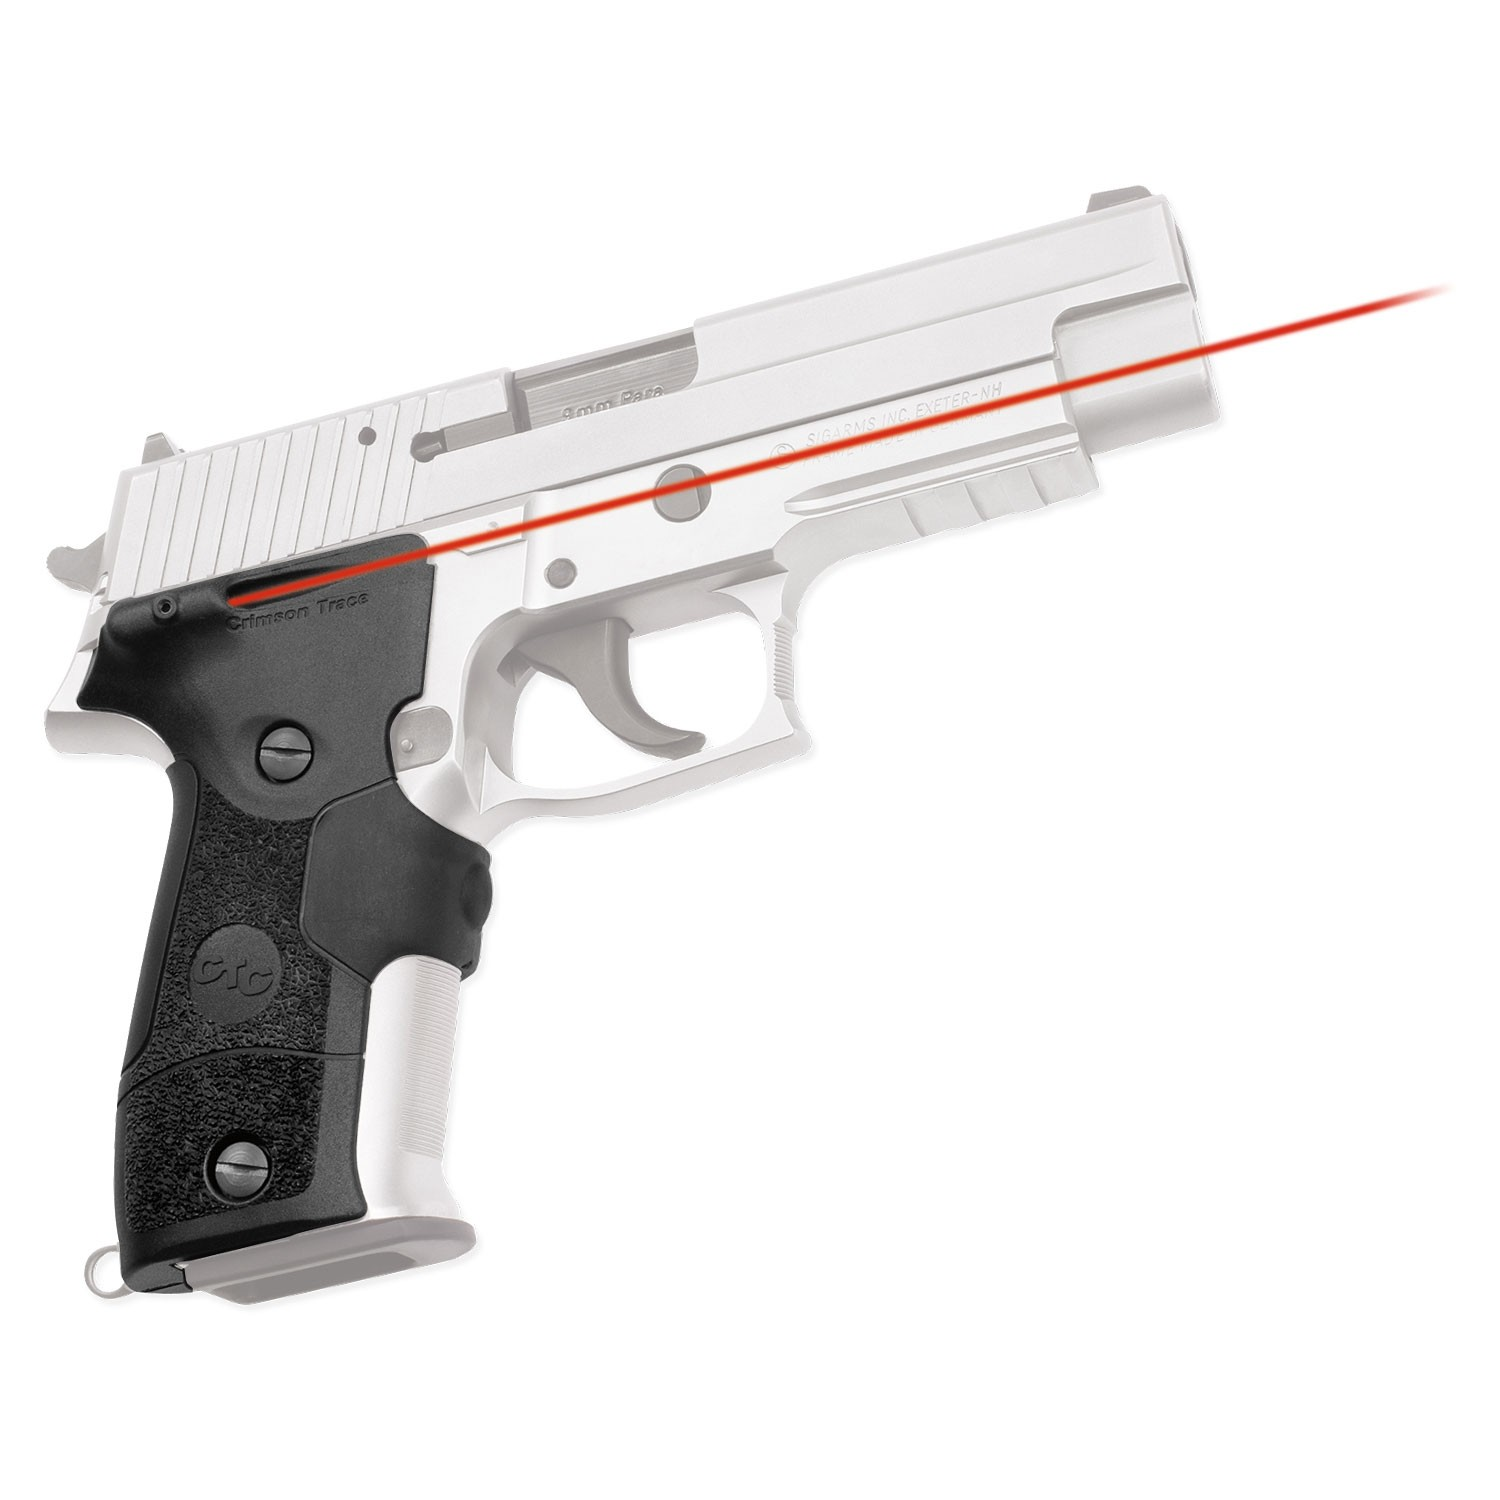 Crimson Trace Laser Sights Now Available!